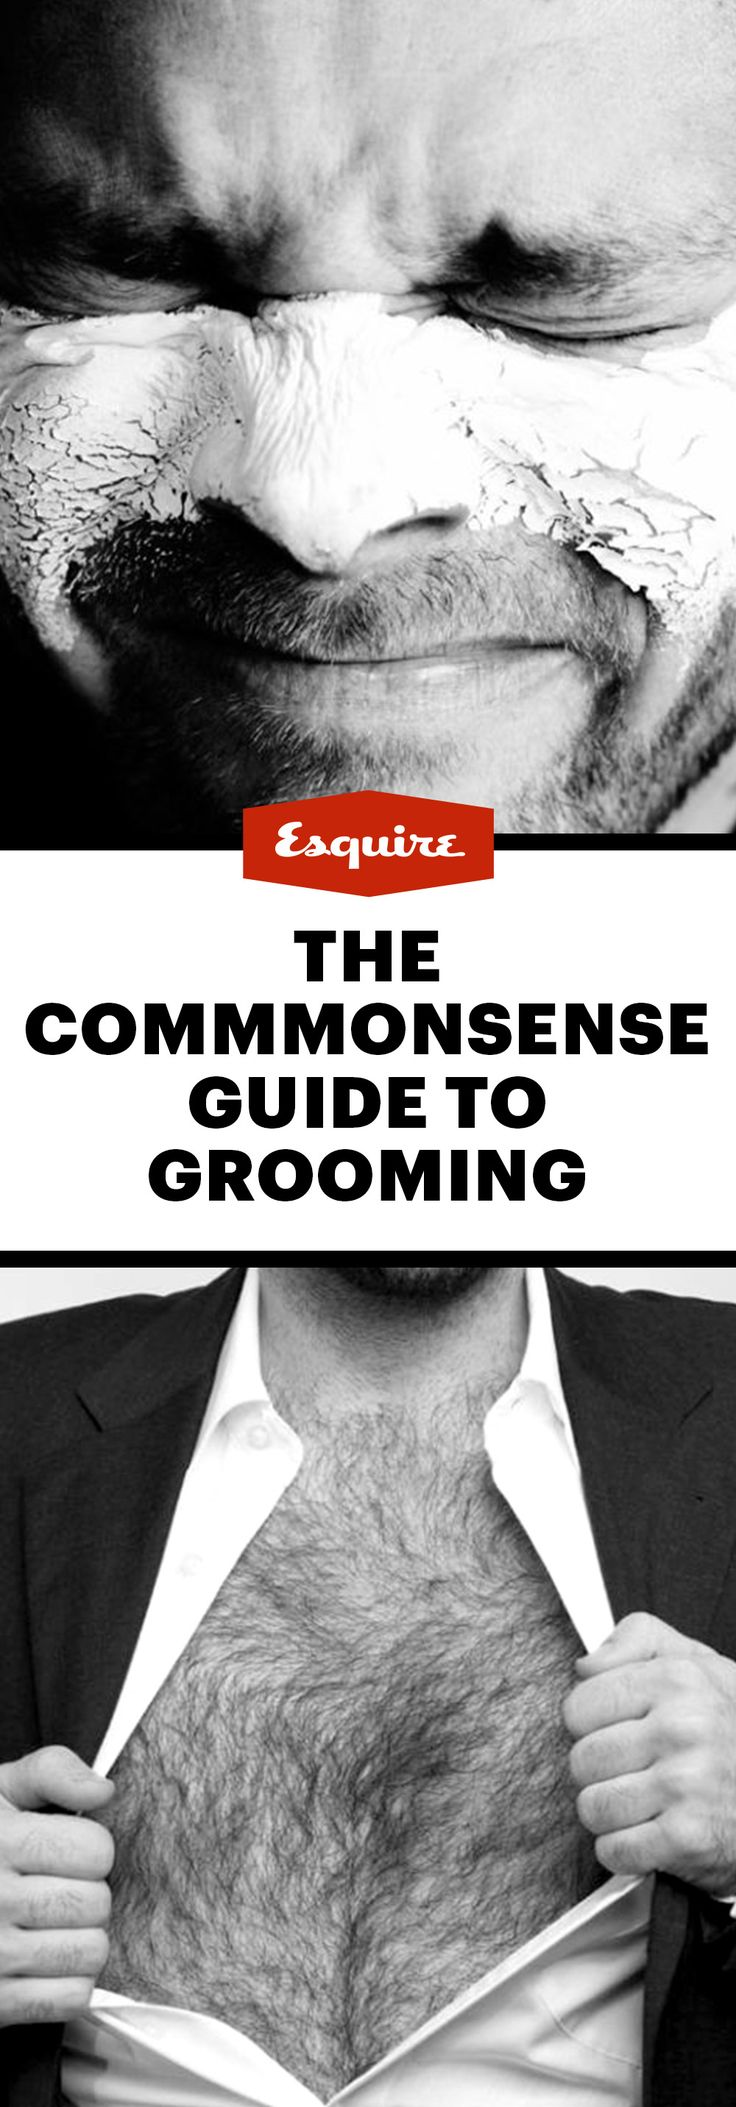 The commonsense guide to grooming, featuring: beard oil, facial masks, back waxing, laser hair removal, eye cream, Ryan Seacrest, one man willing to get a little Botox, and more.